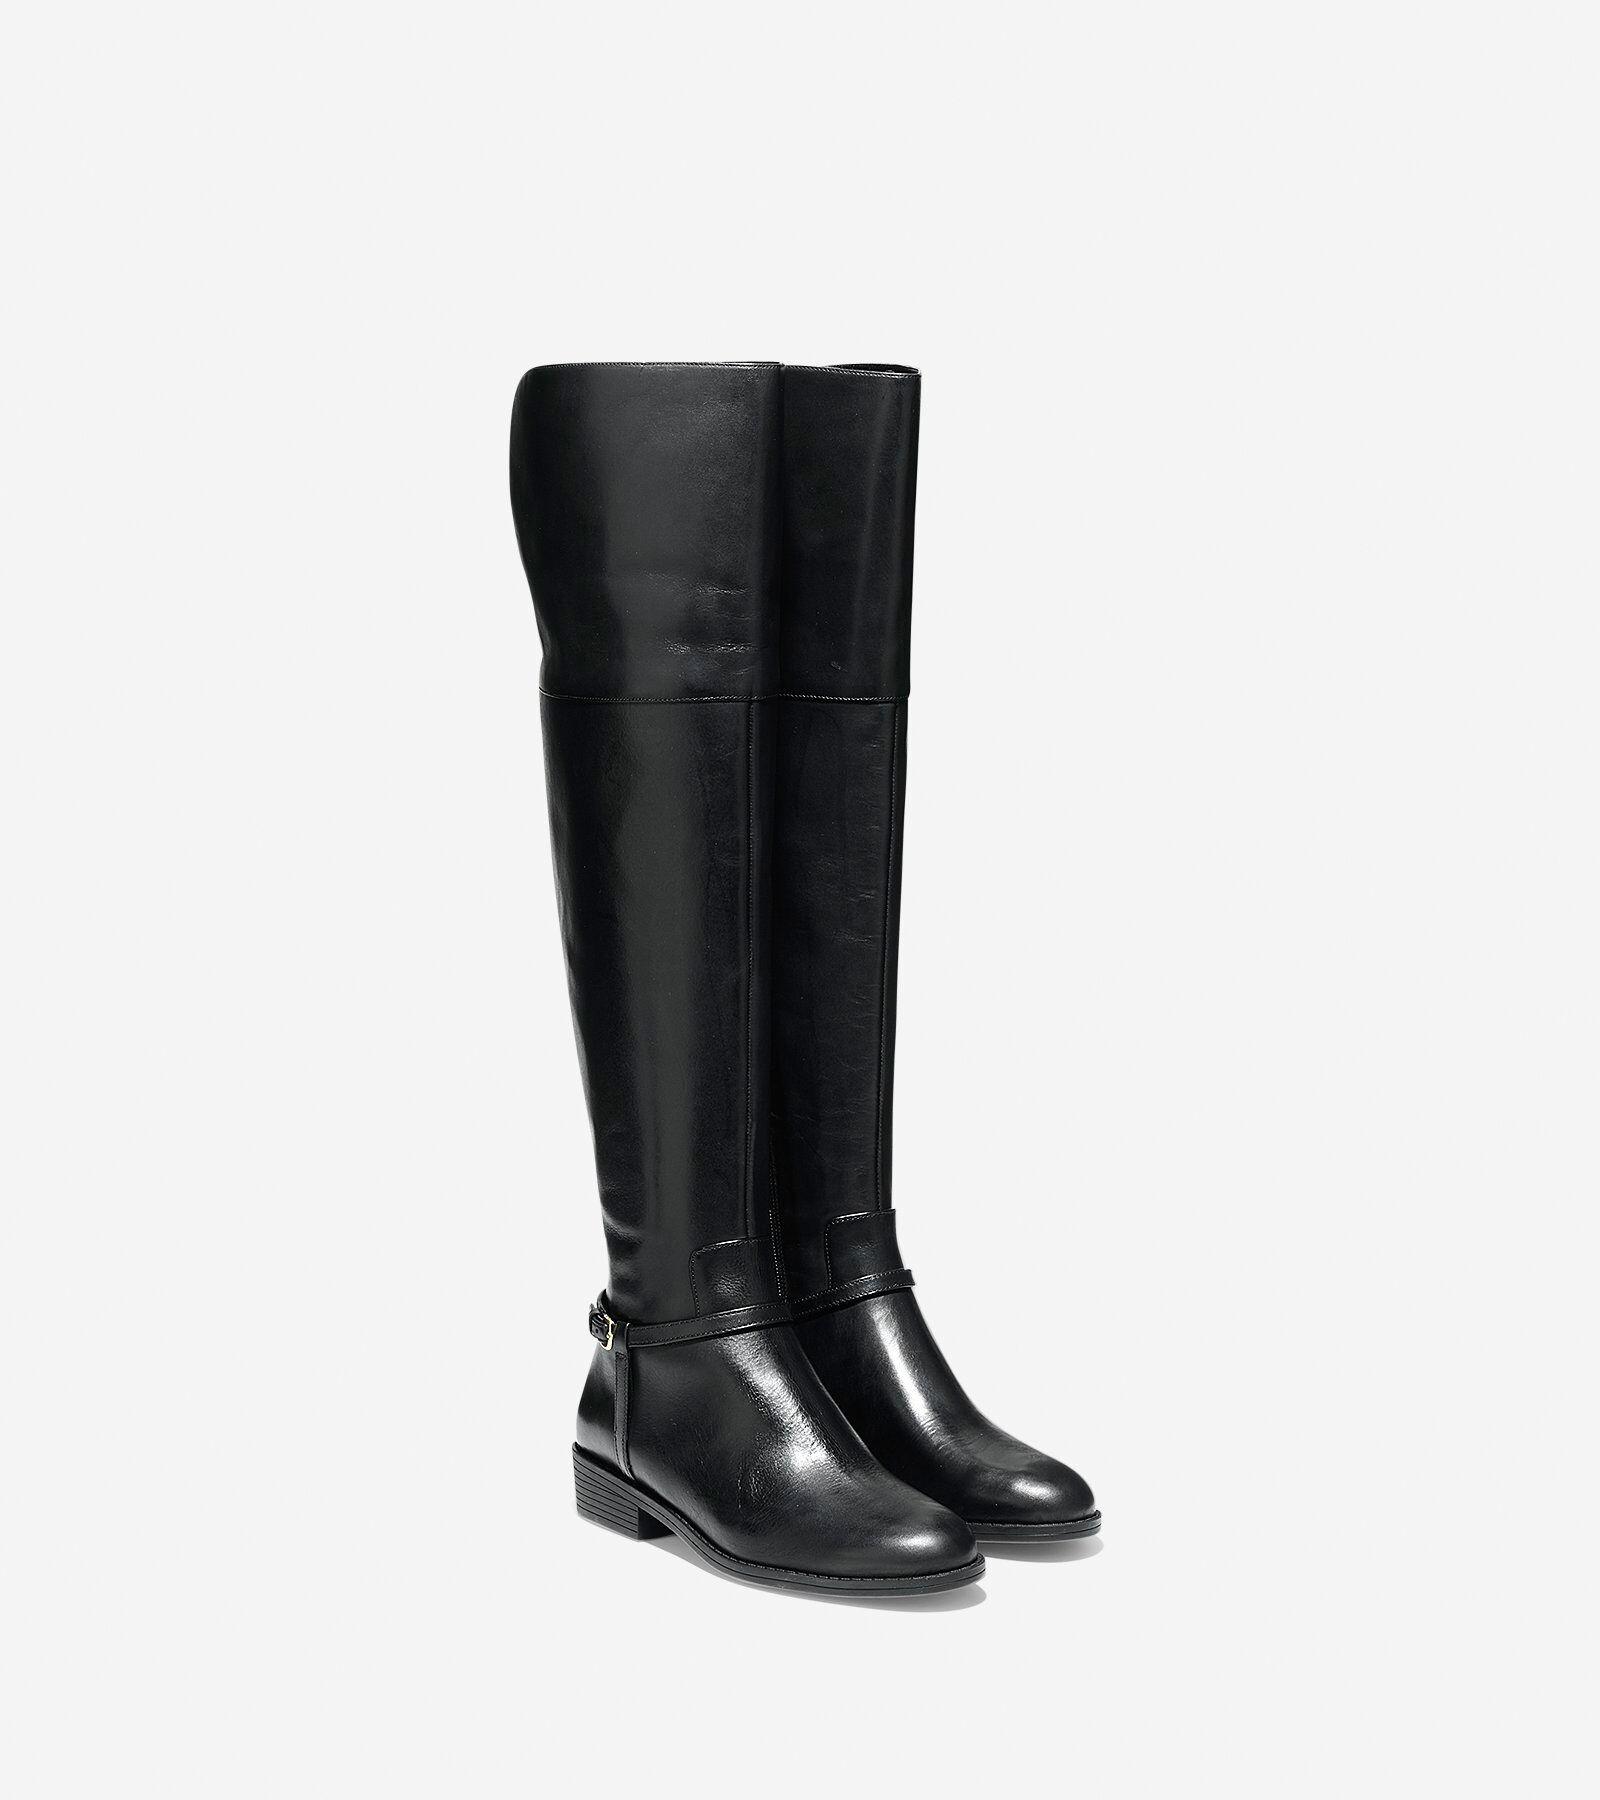 Cole Haan Women's Valentia Leather Over-the-Knee Boots 4BHvRN4W